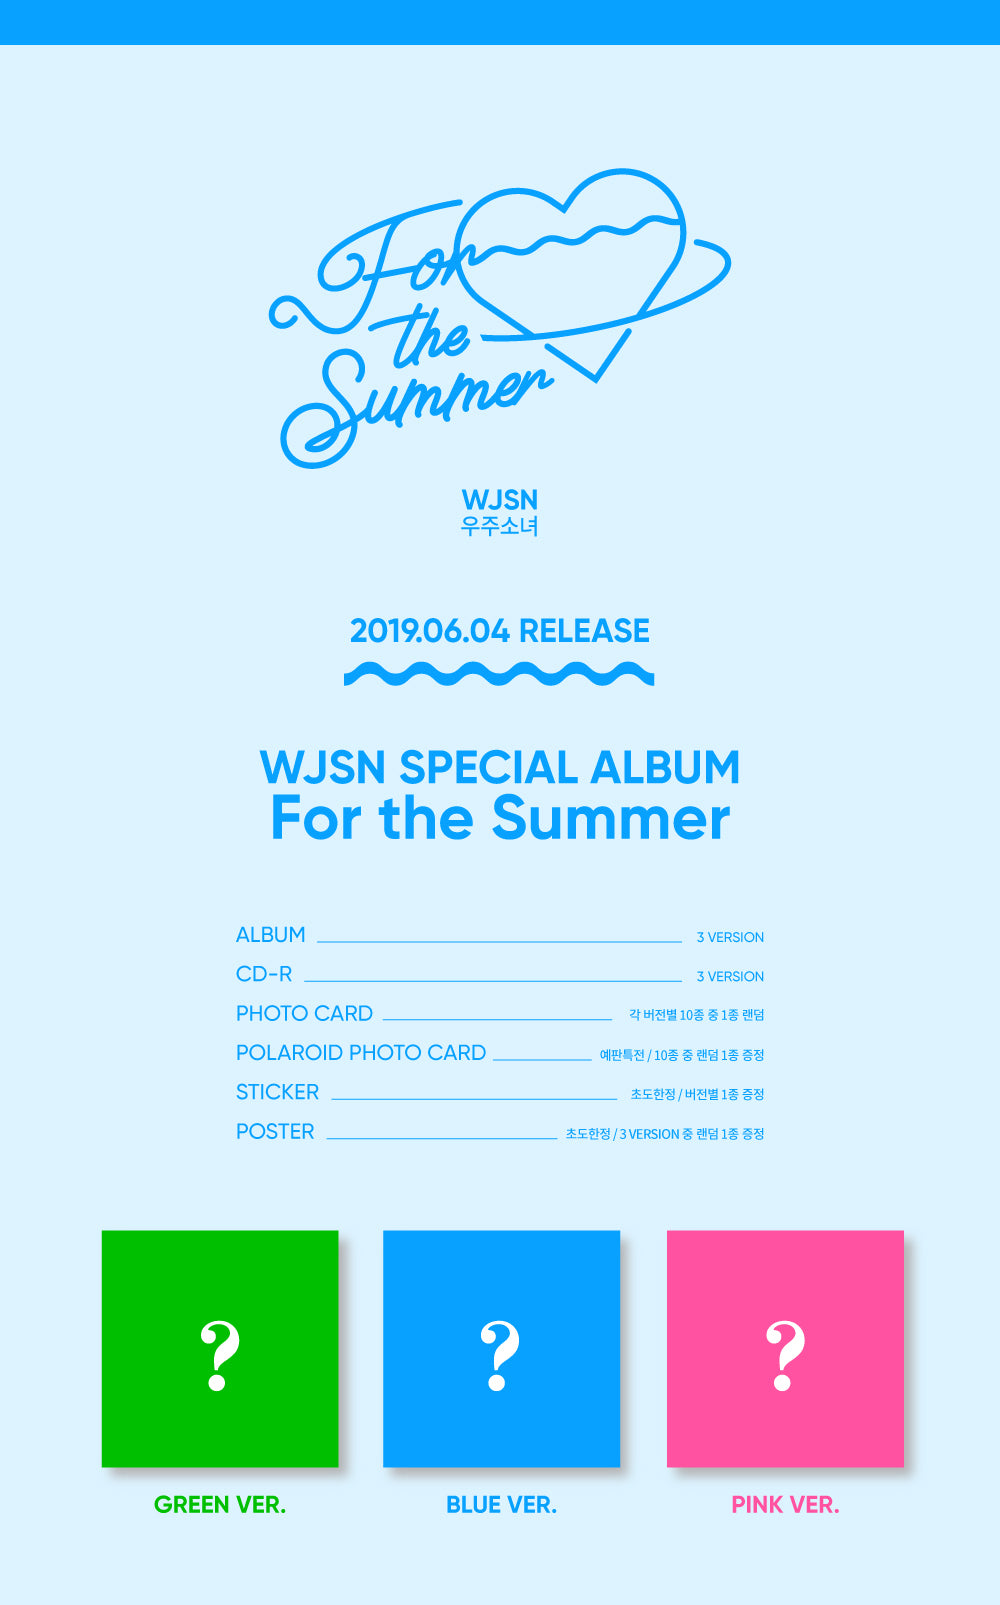 WJSN - For the Summer (Special Album) - J-Store Online